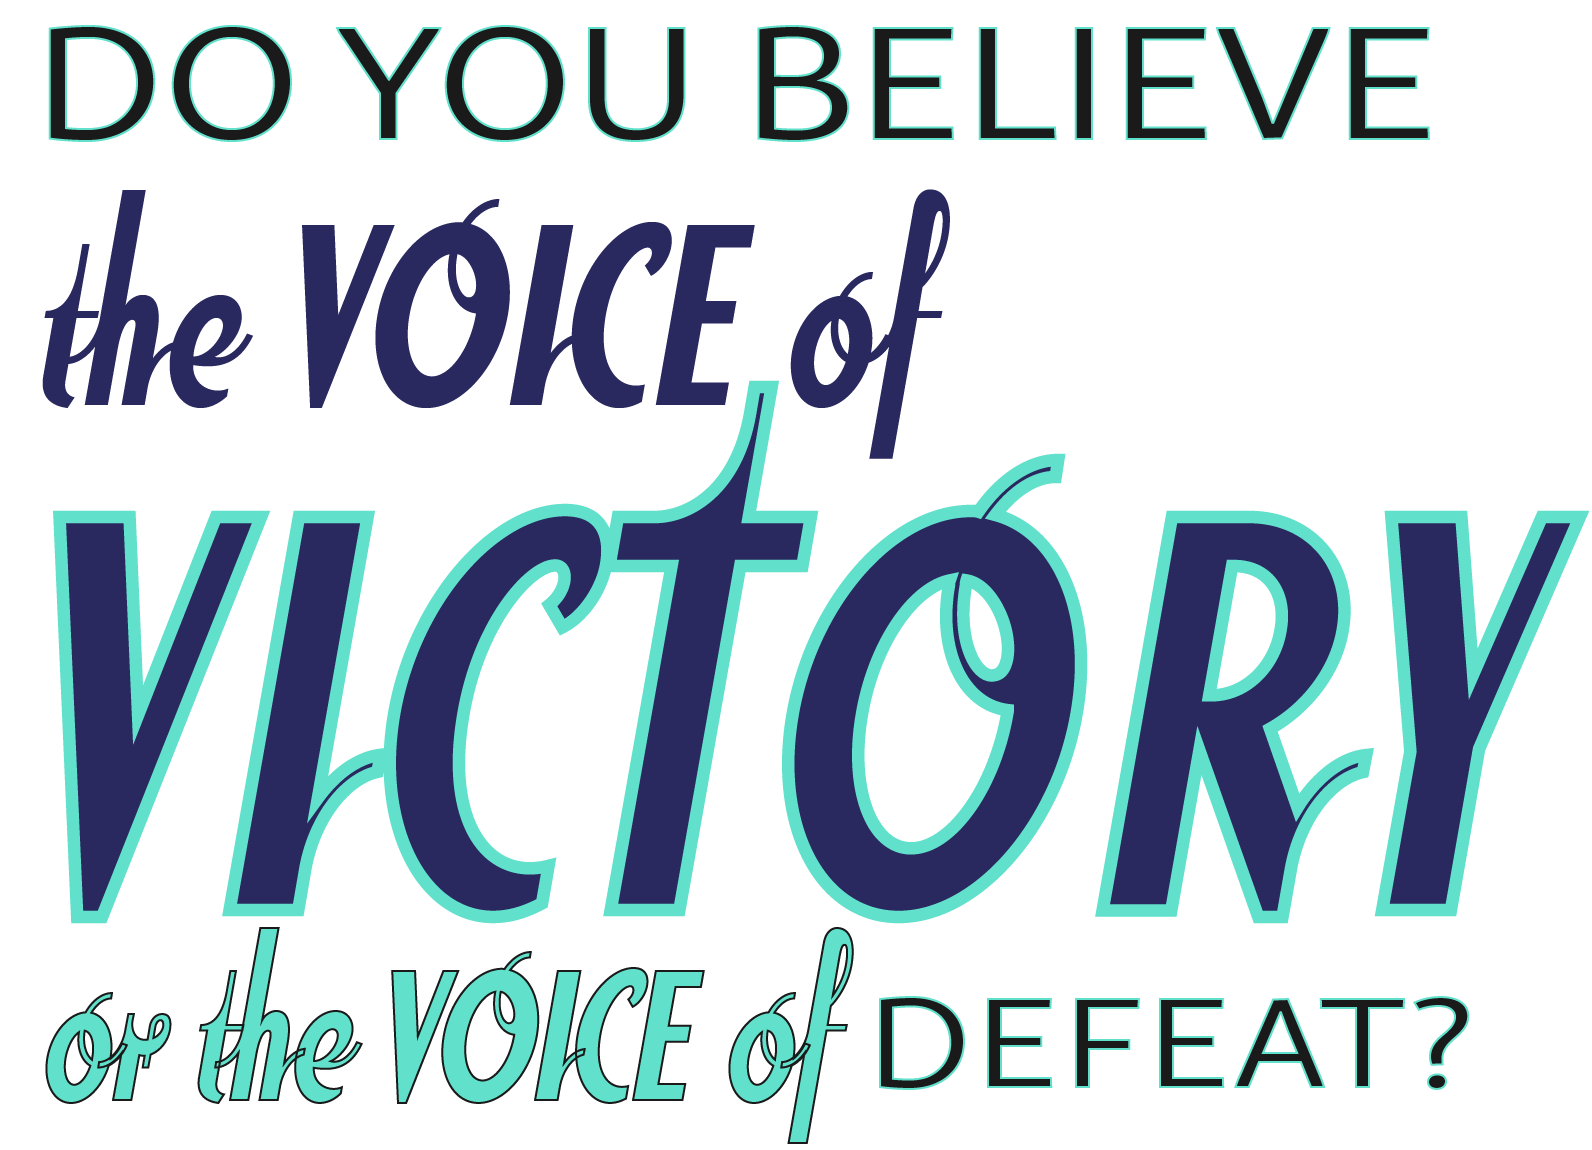 Voice of Victory.png